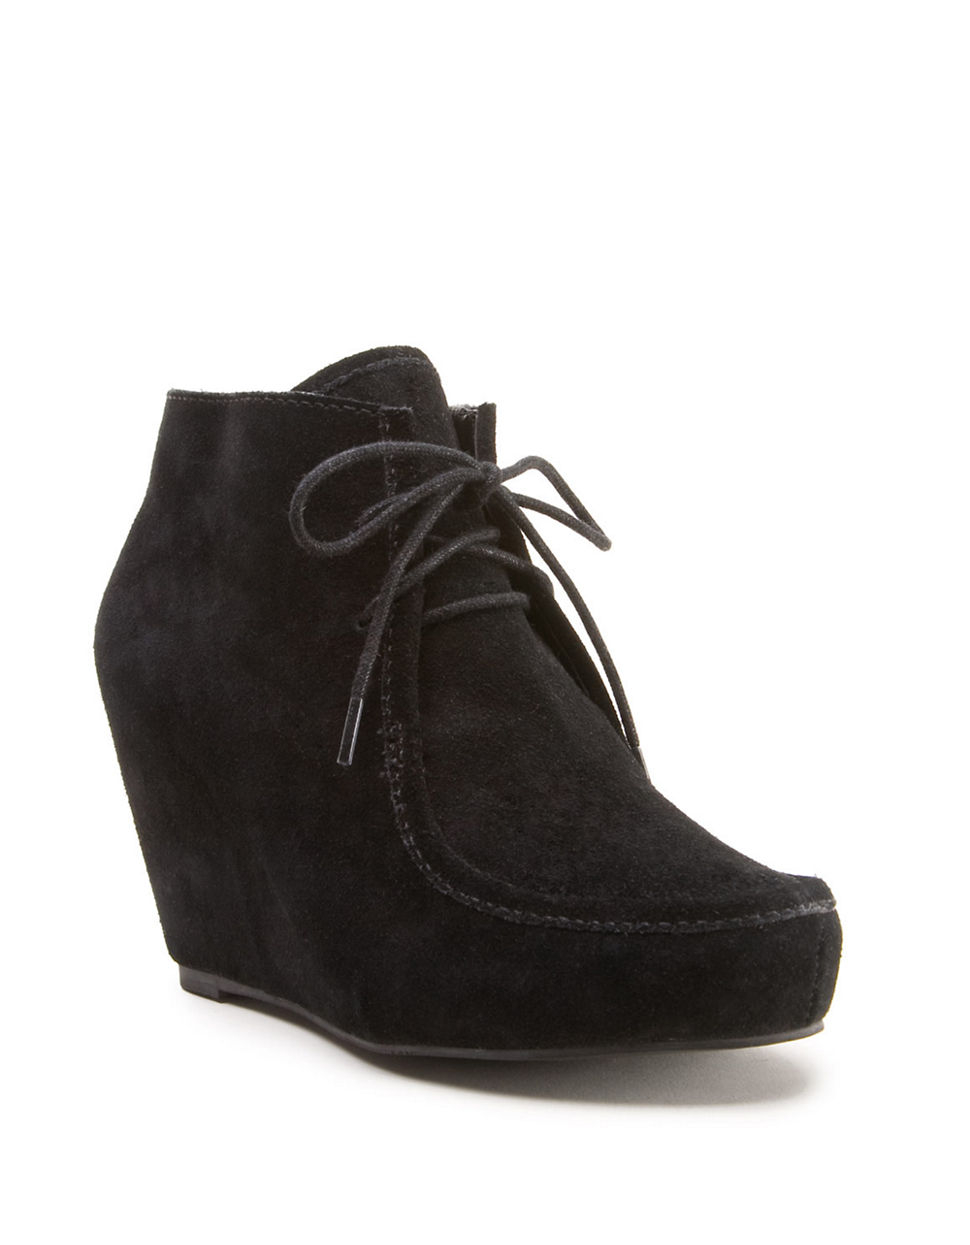 dv by dolce vita pilar wedge boots in black black suede